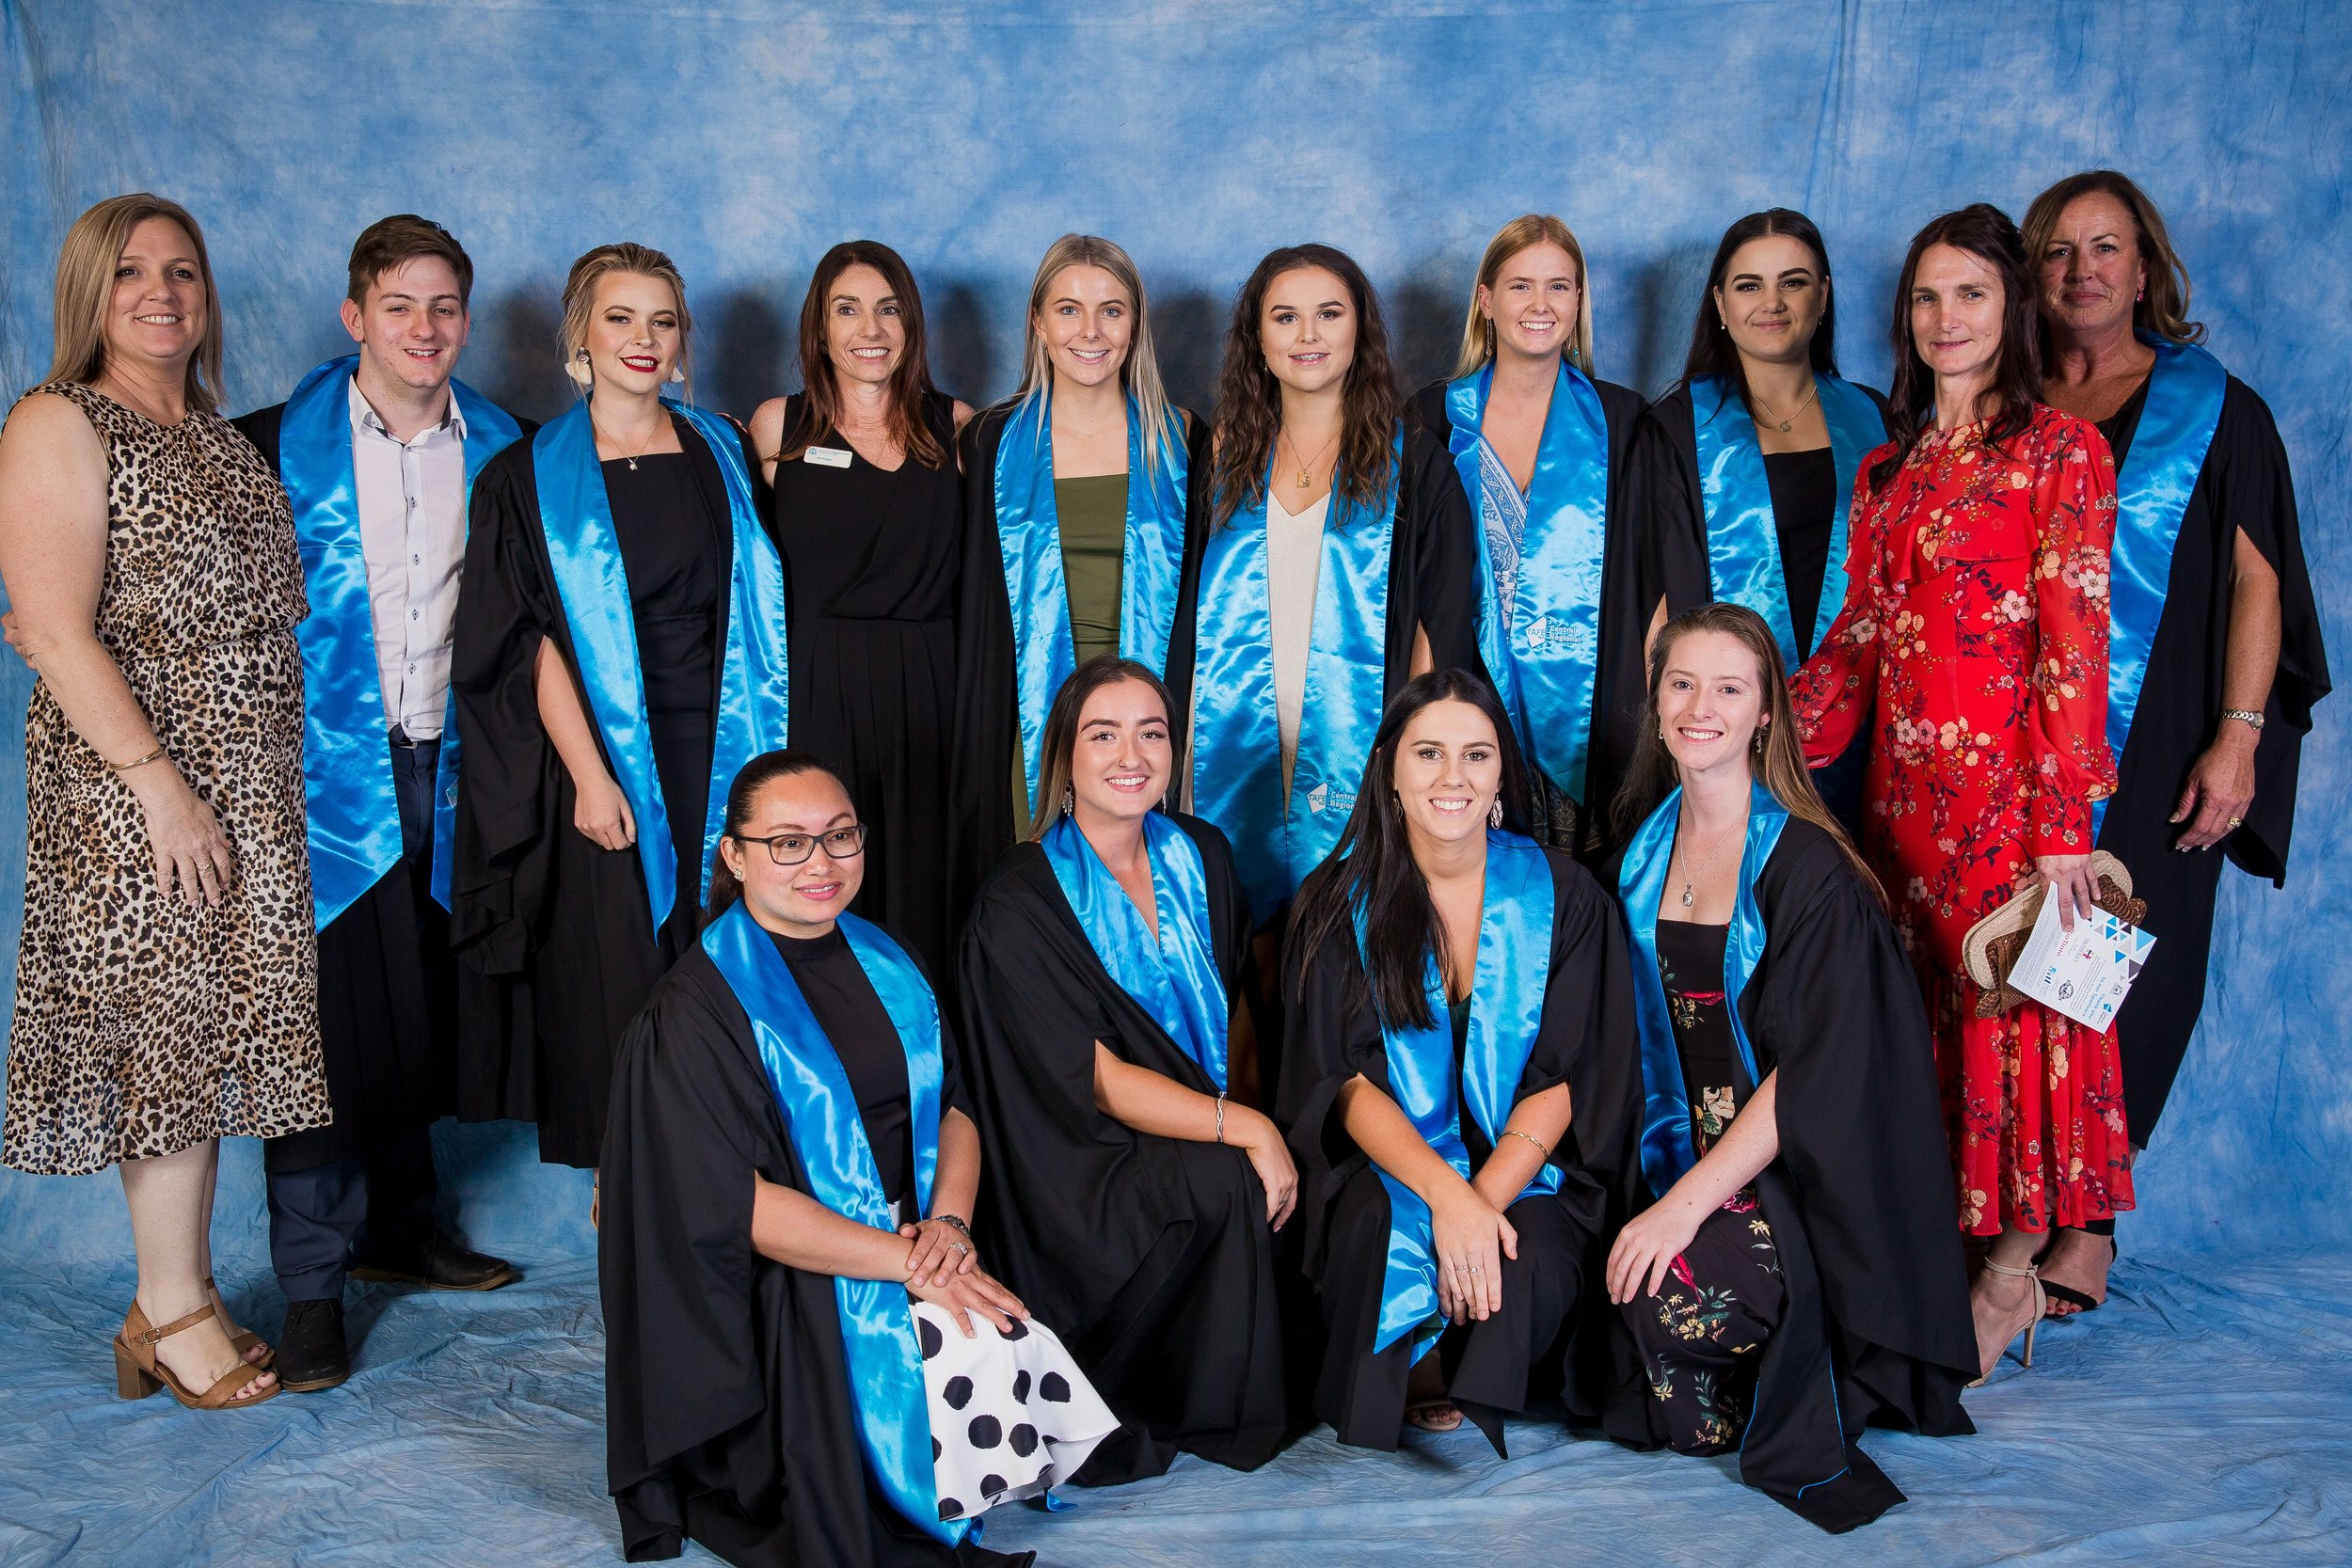 Nursing students with lecturers